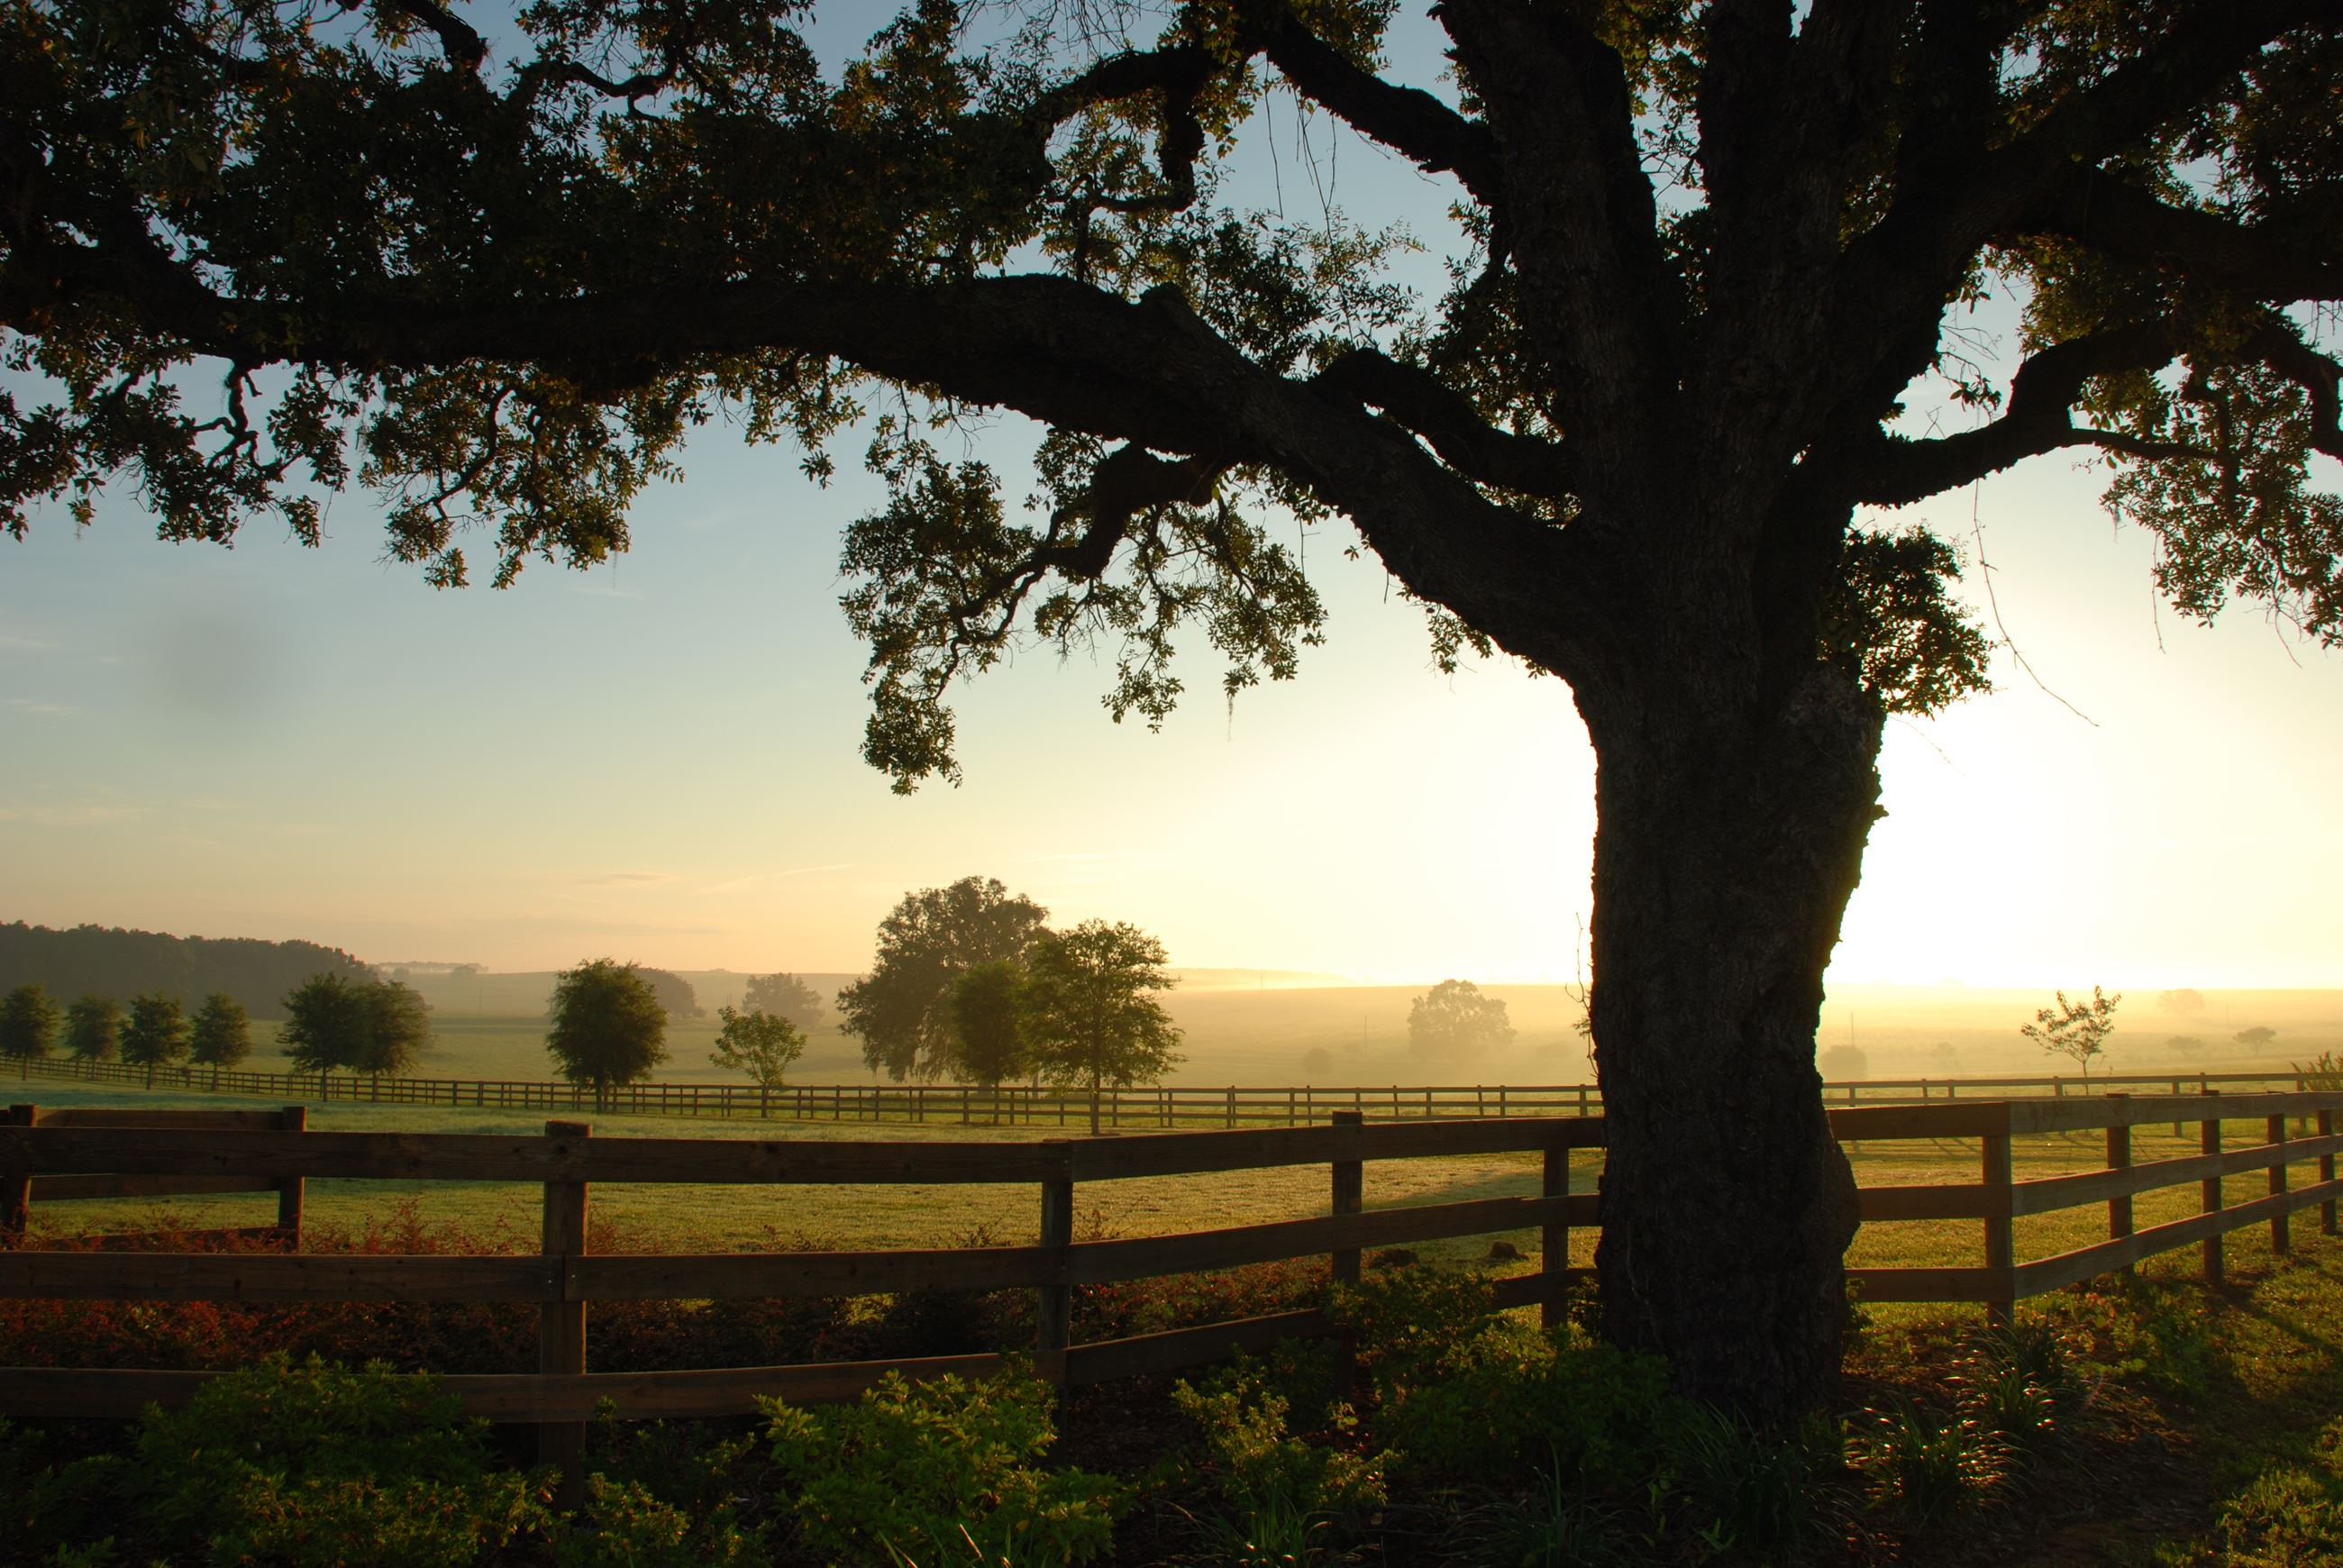 Rural pasture_tree at sunrise